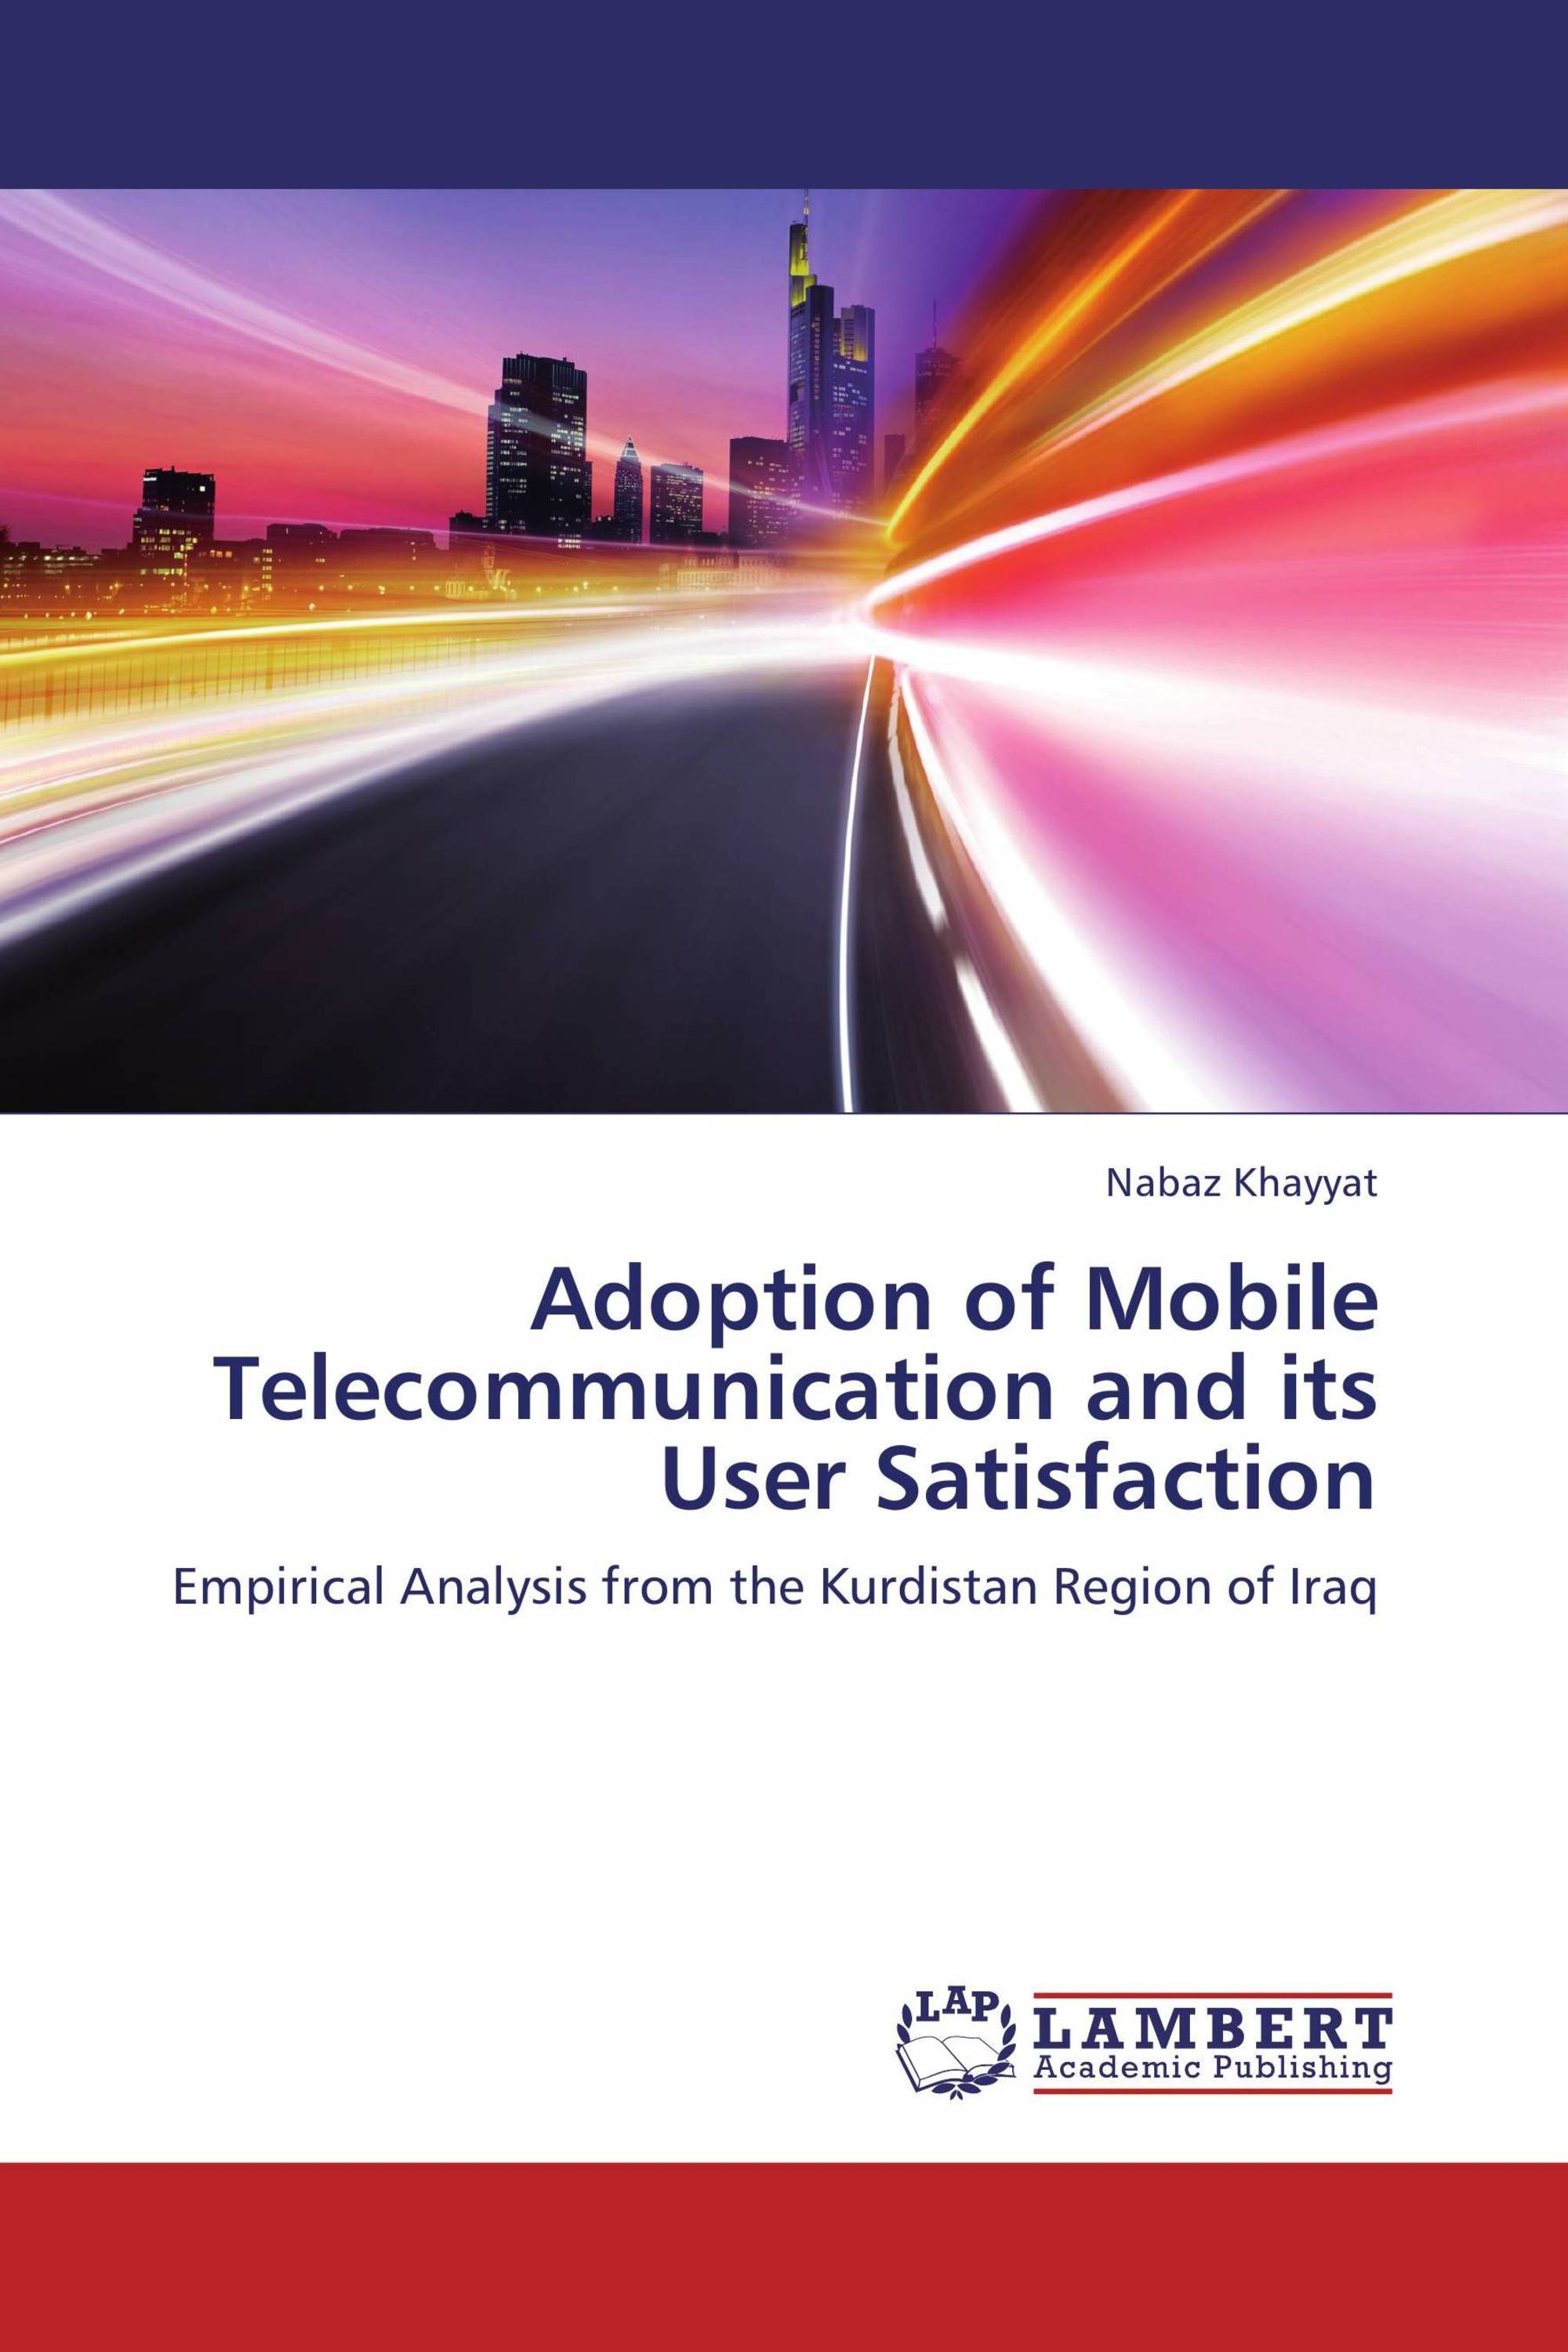 Adoption of Mobile Telecommunication and its User Satisfaction